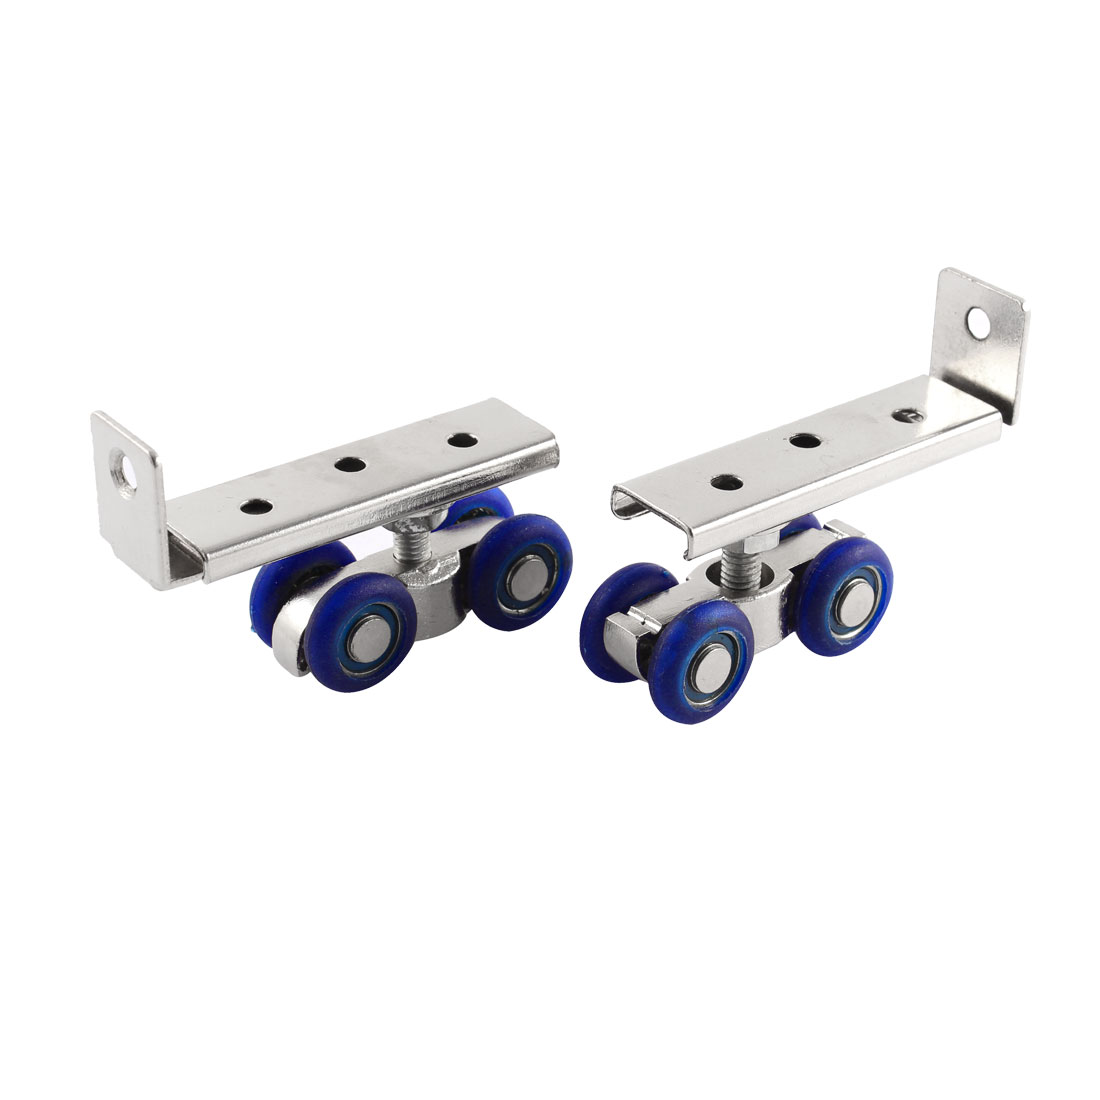 2pcs 19mm Wheels Dia Shower Door Rollers Runners Pulley Silver Tone Blue